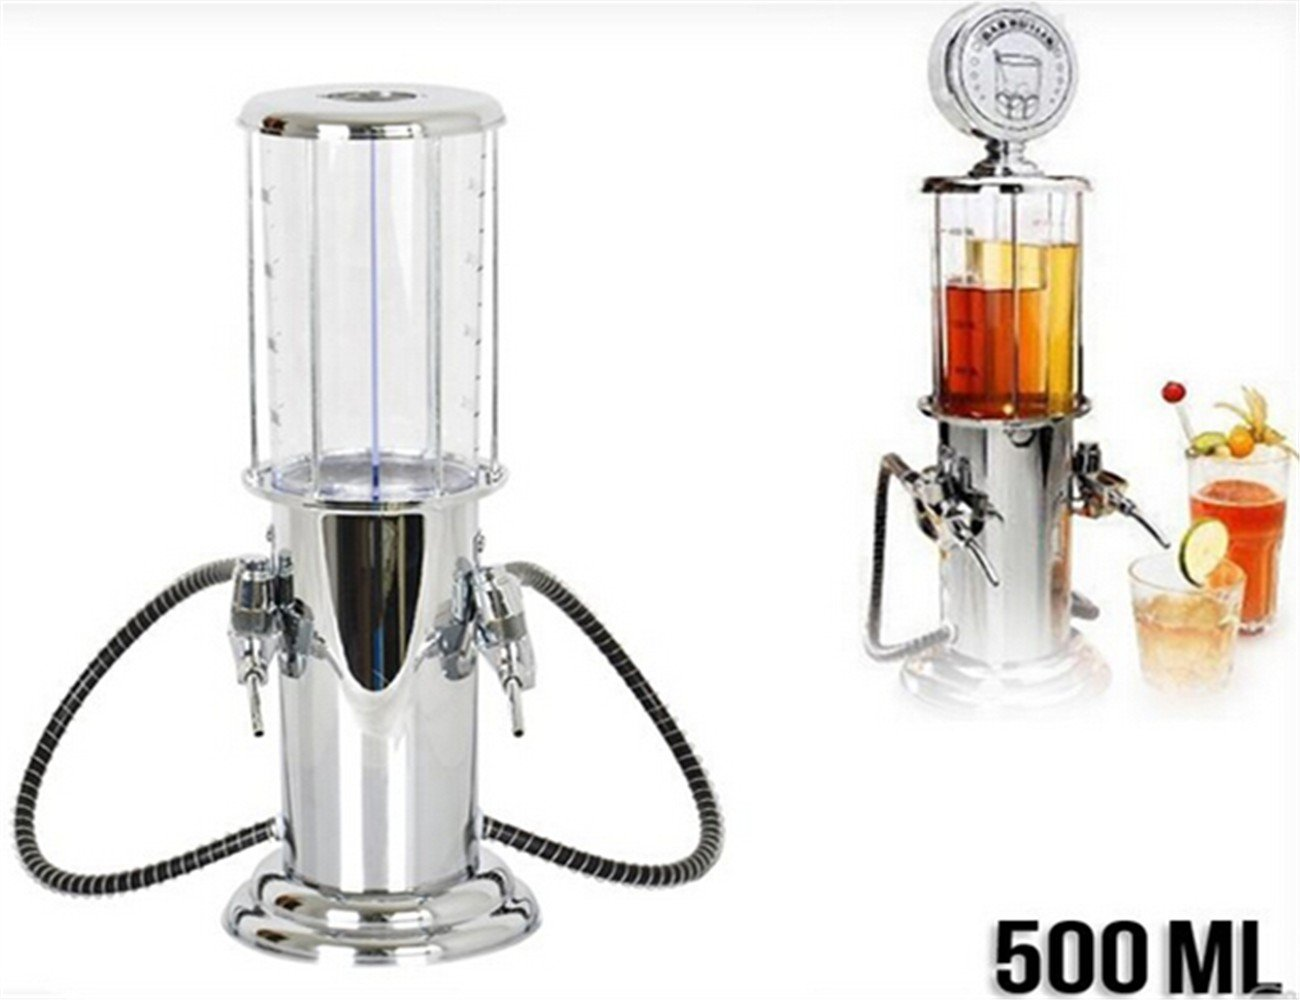 500 ml Dispensador de bebida doble pistola de licor cerveza y diseño Gas Station: Amazon.es: Hogar